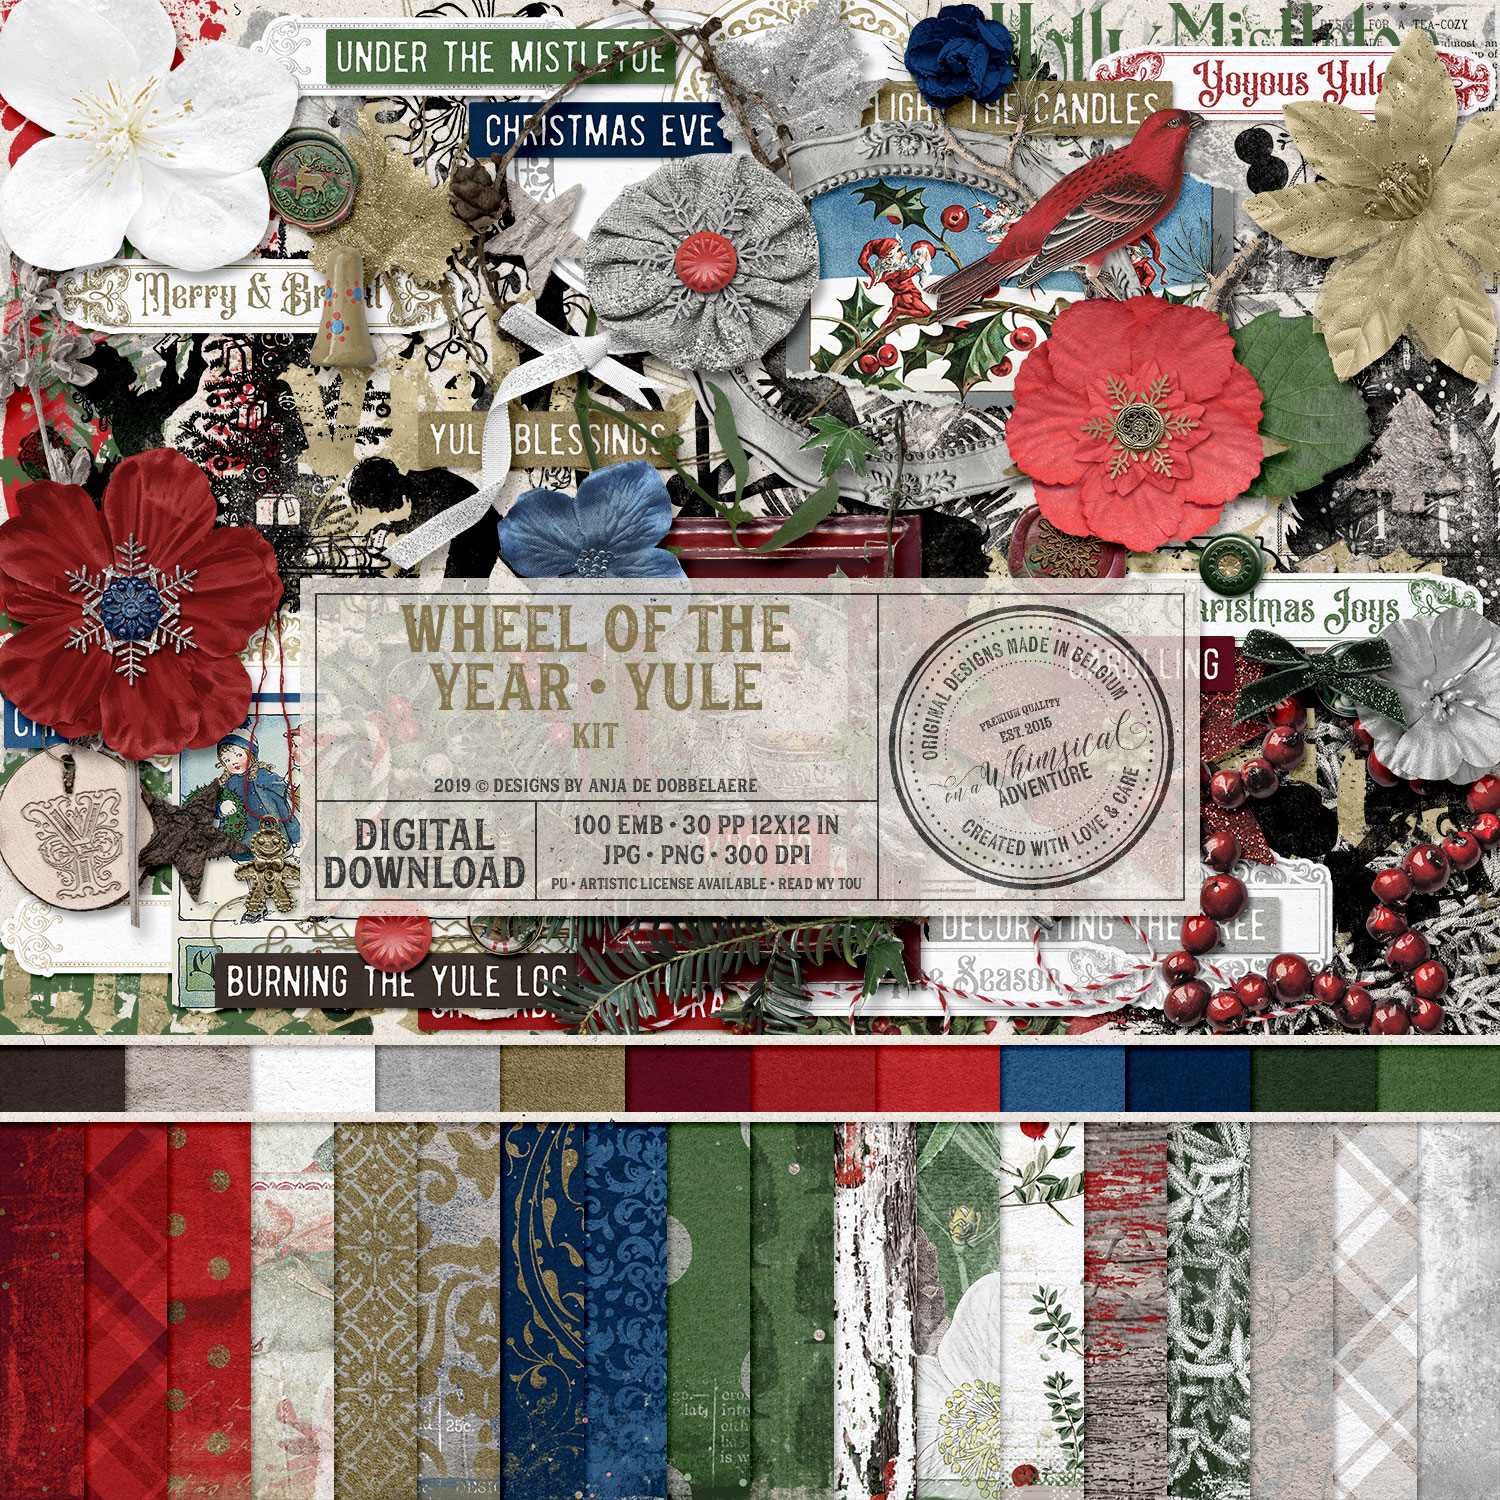 Wheel Of The Year / Yule Kit by On A Whimsical Adventure